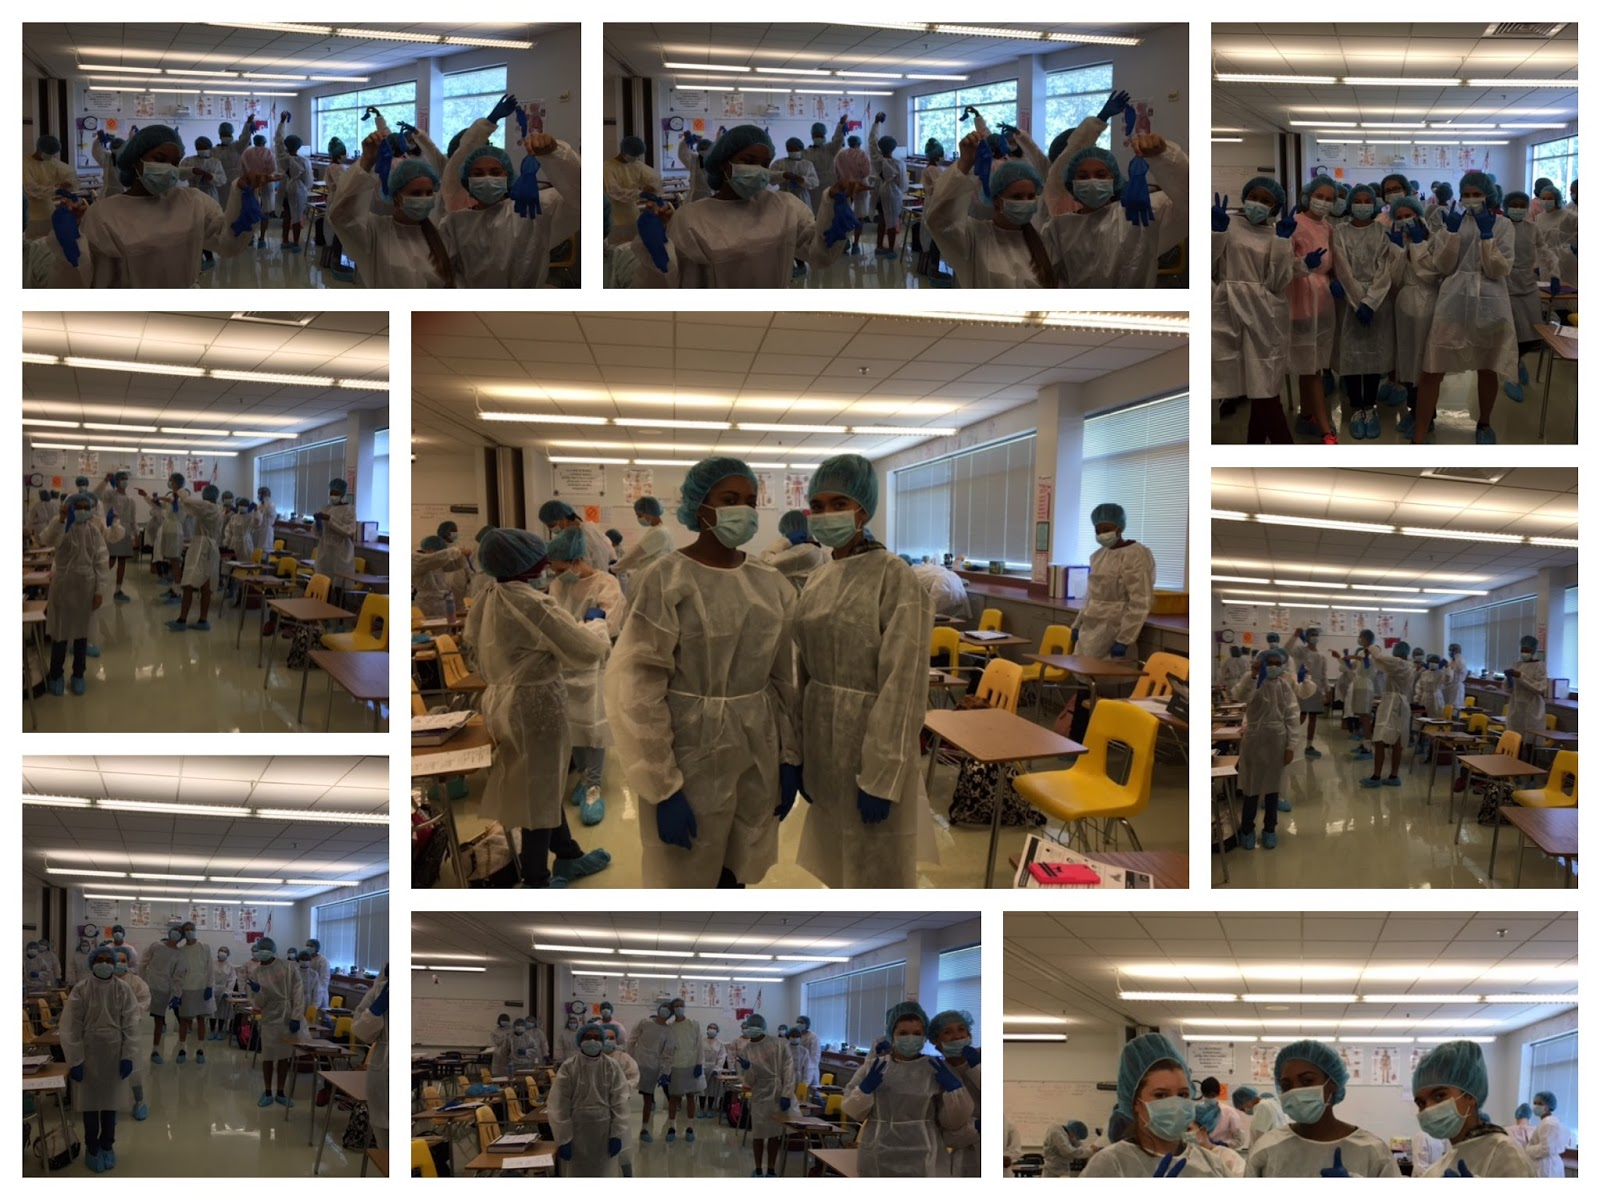 Raiders Revealed: Gloving Gowning In Healthcare Science Class